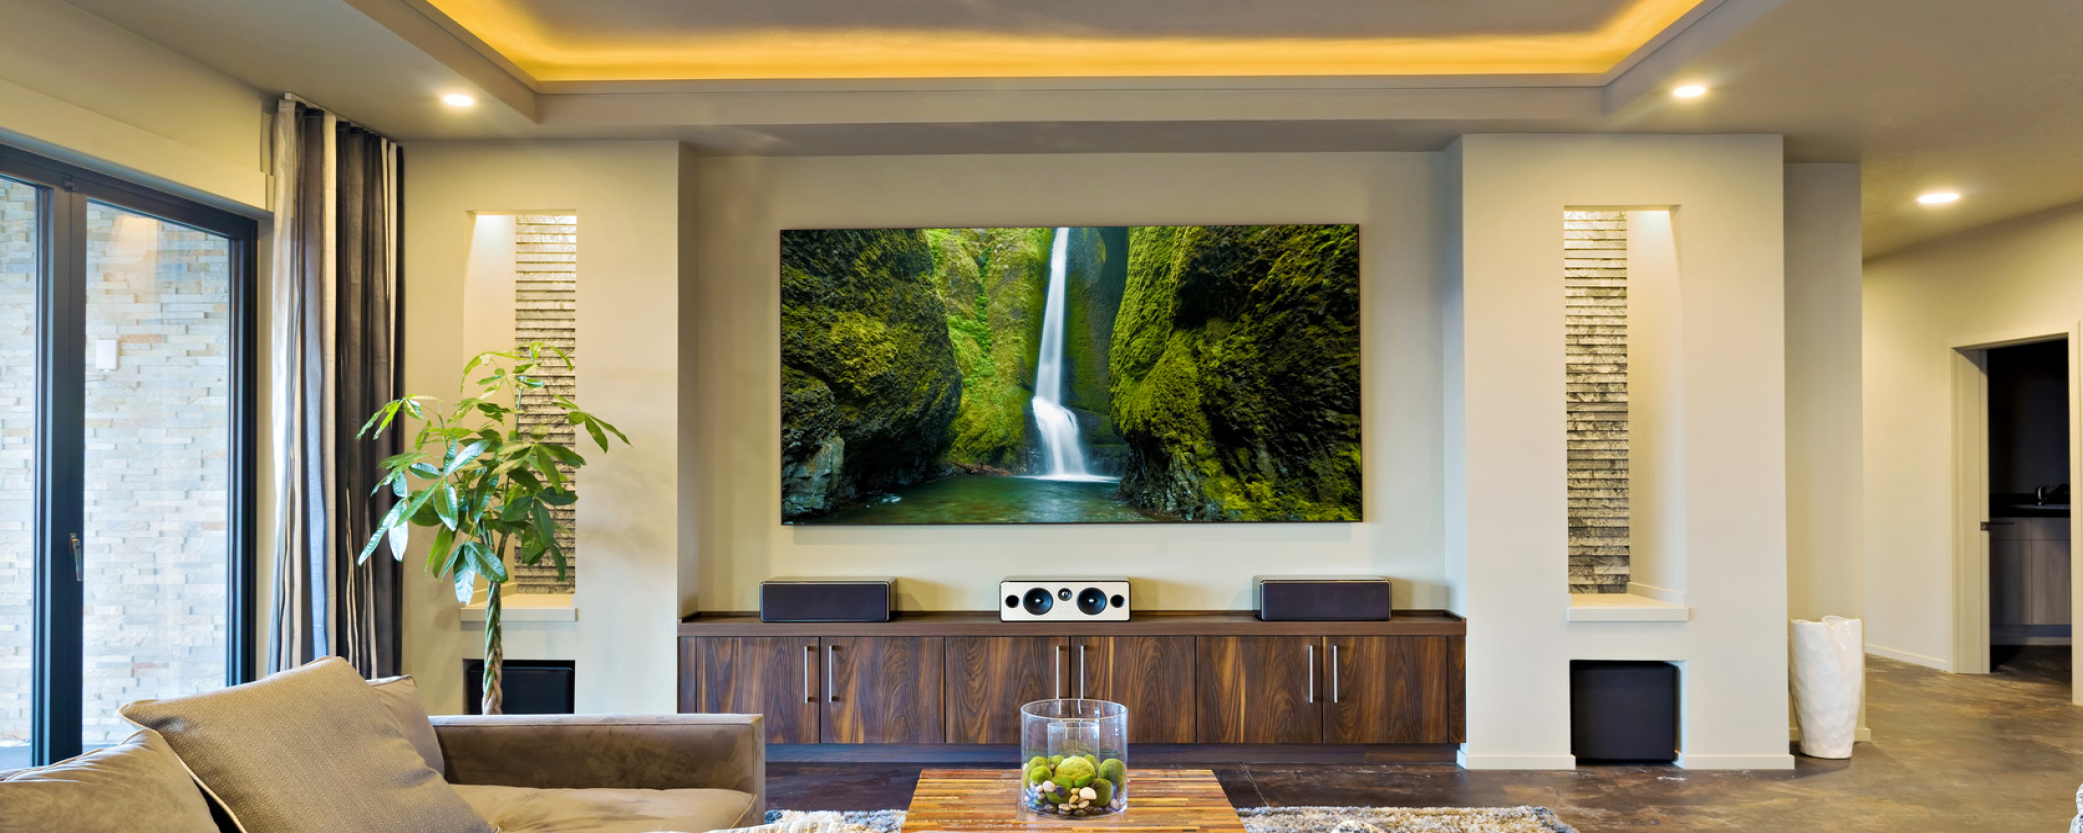 Home Theater Installation   Beast Electric